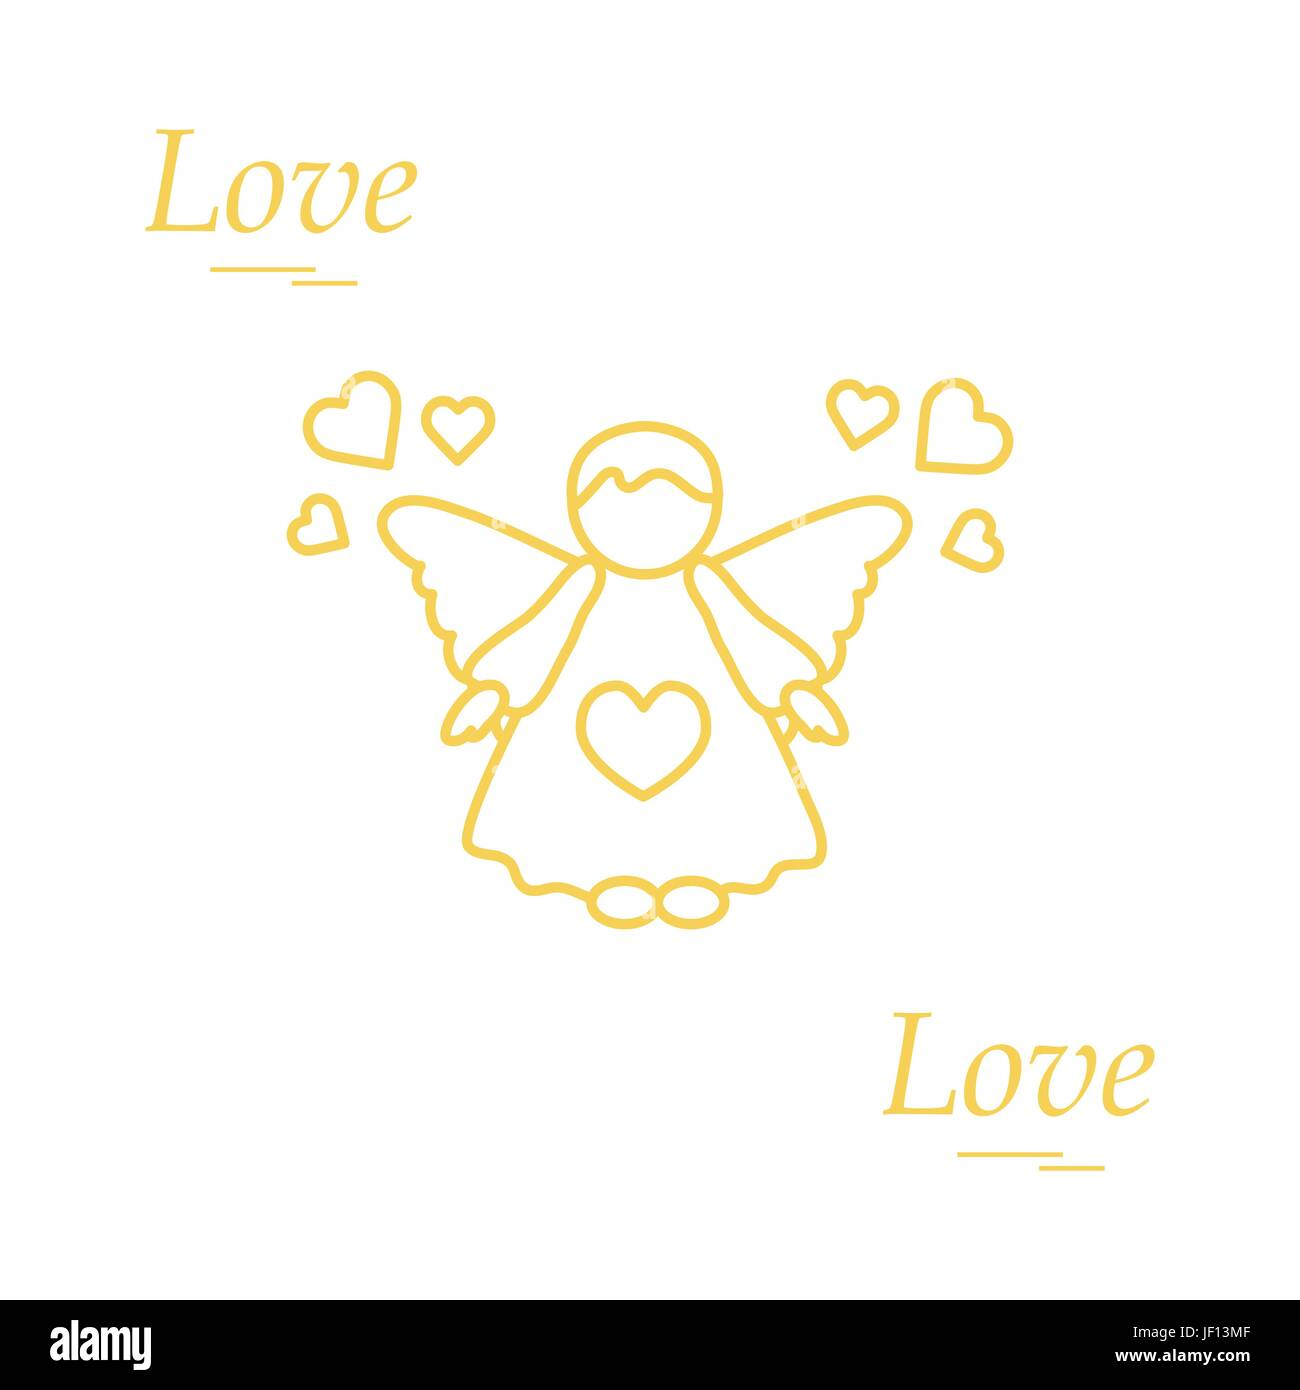 Cute Vector Illustration Angel And Hearts Love Symbol Design For Banner Flyer